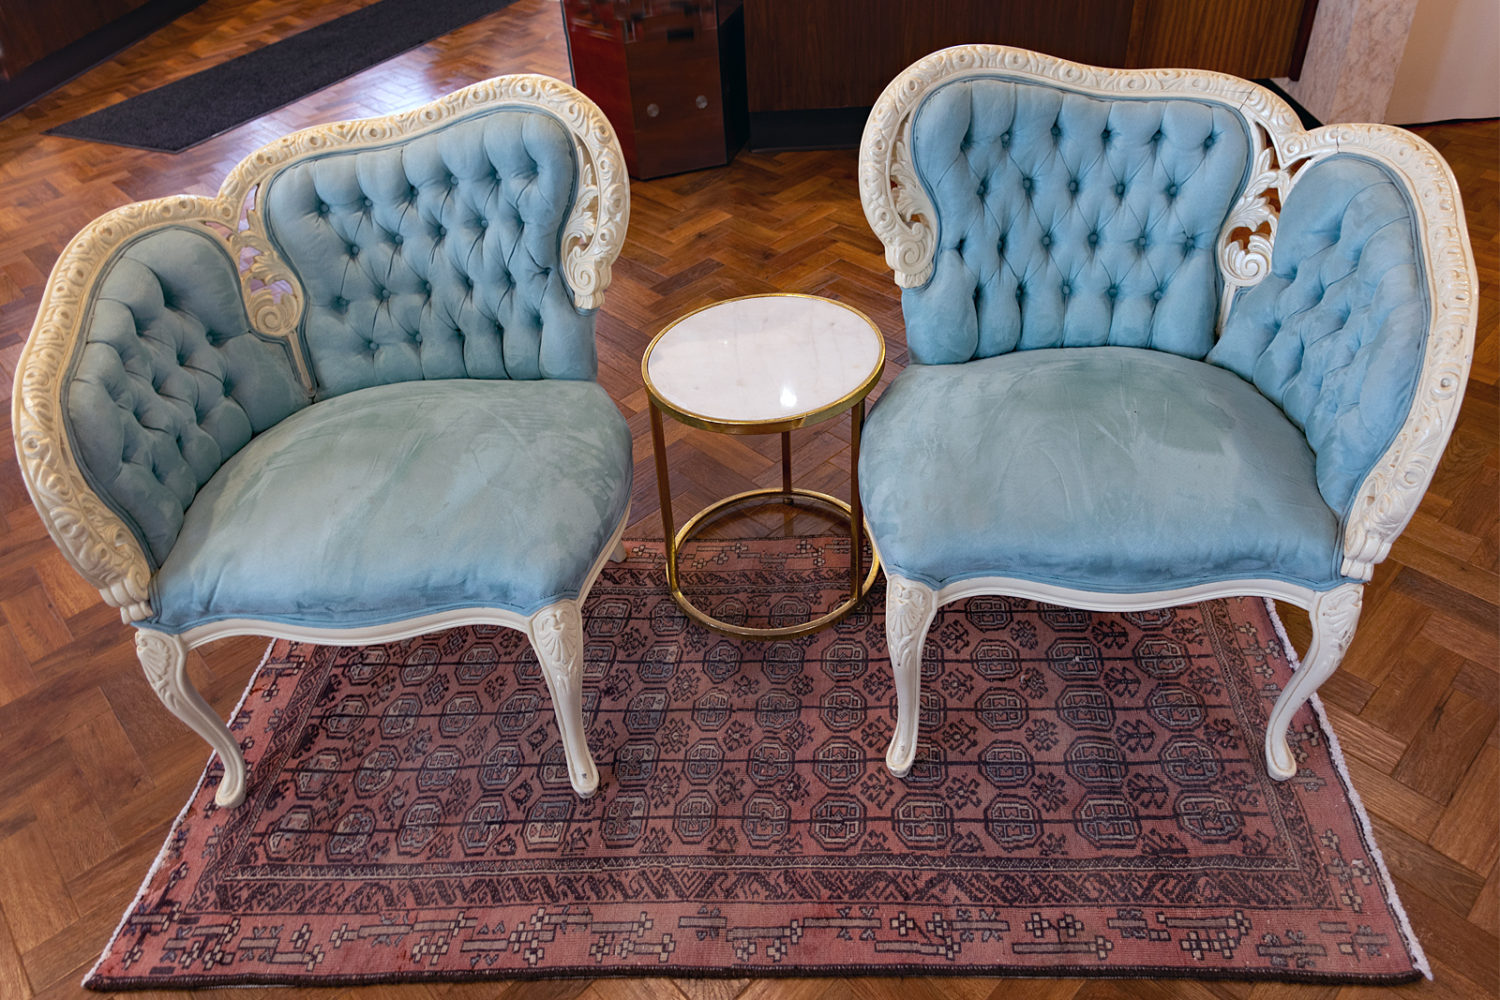 Victorian chairs at Gem Lab on Mount Hope